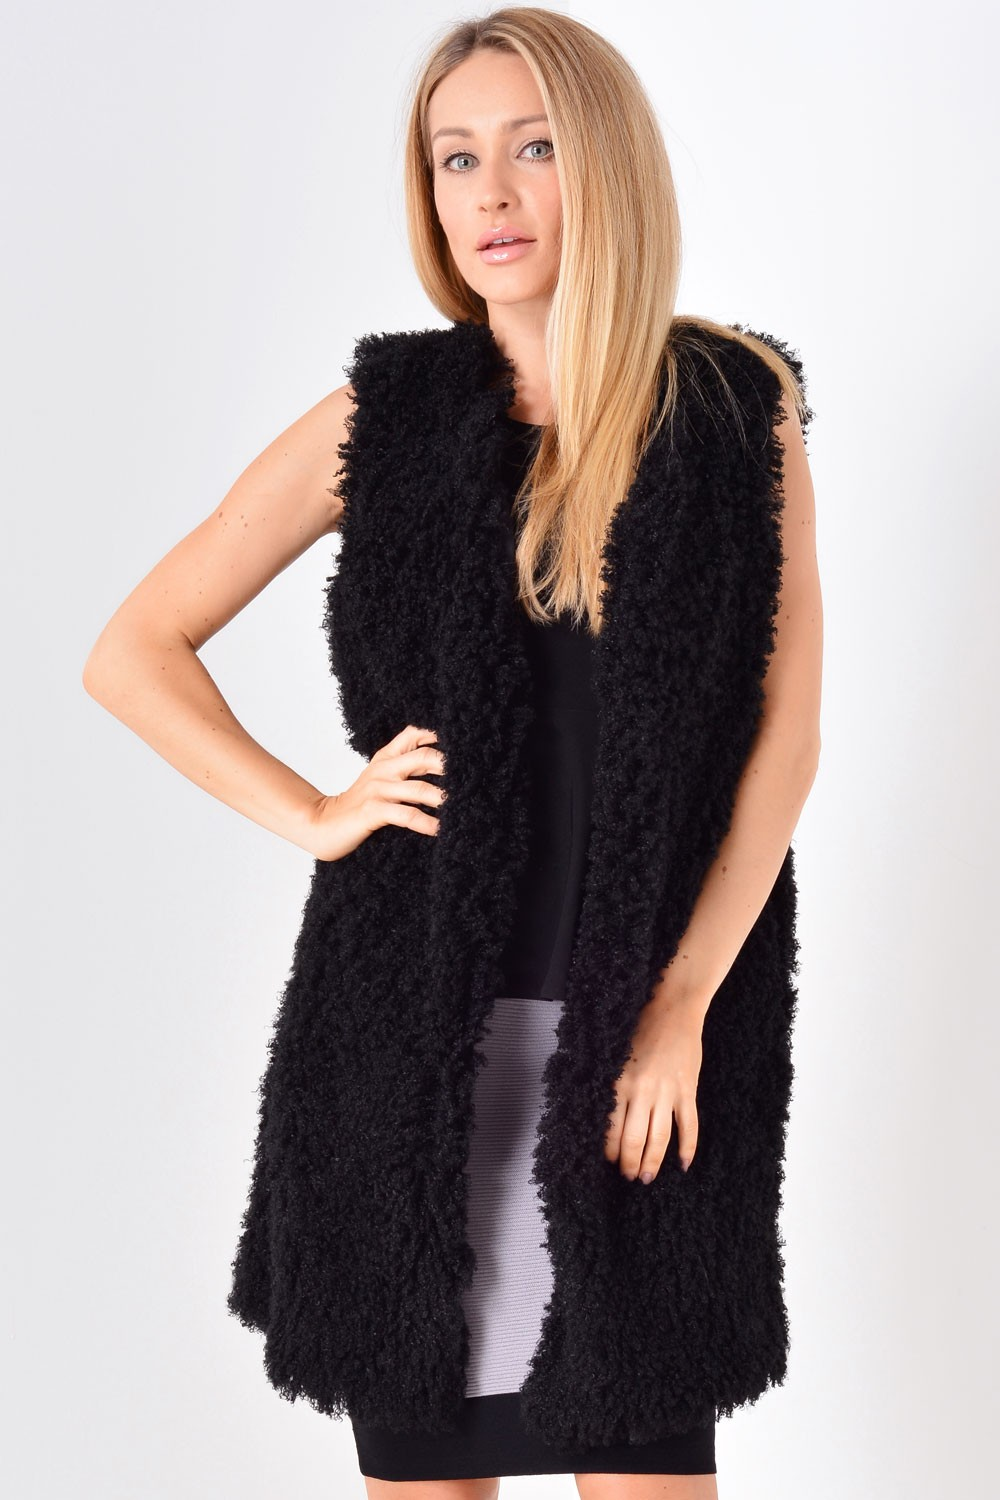 Women faux fur waistcoat, Black faux fur, woman fur waistcoat, Fake fur waistcoat, plus size, black waistcoat,Christmas gifts, gifts for her UniqueSilkScarves $ Favorite Add to The most common black fur waistcoat material is faux fur. The most popular color?